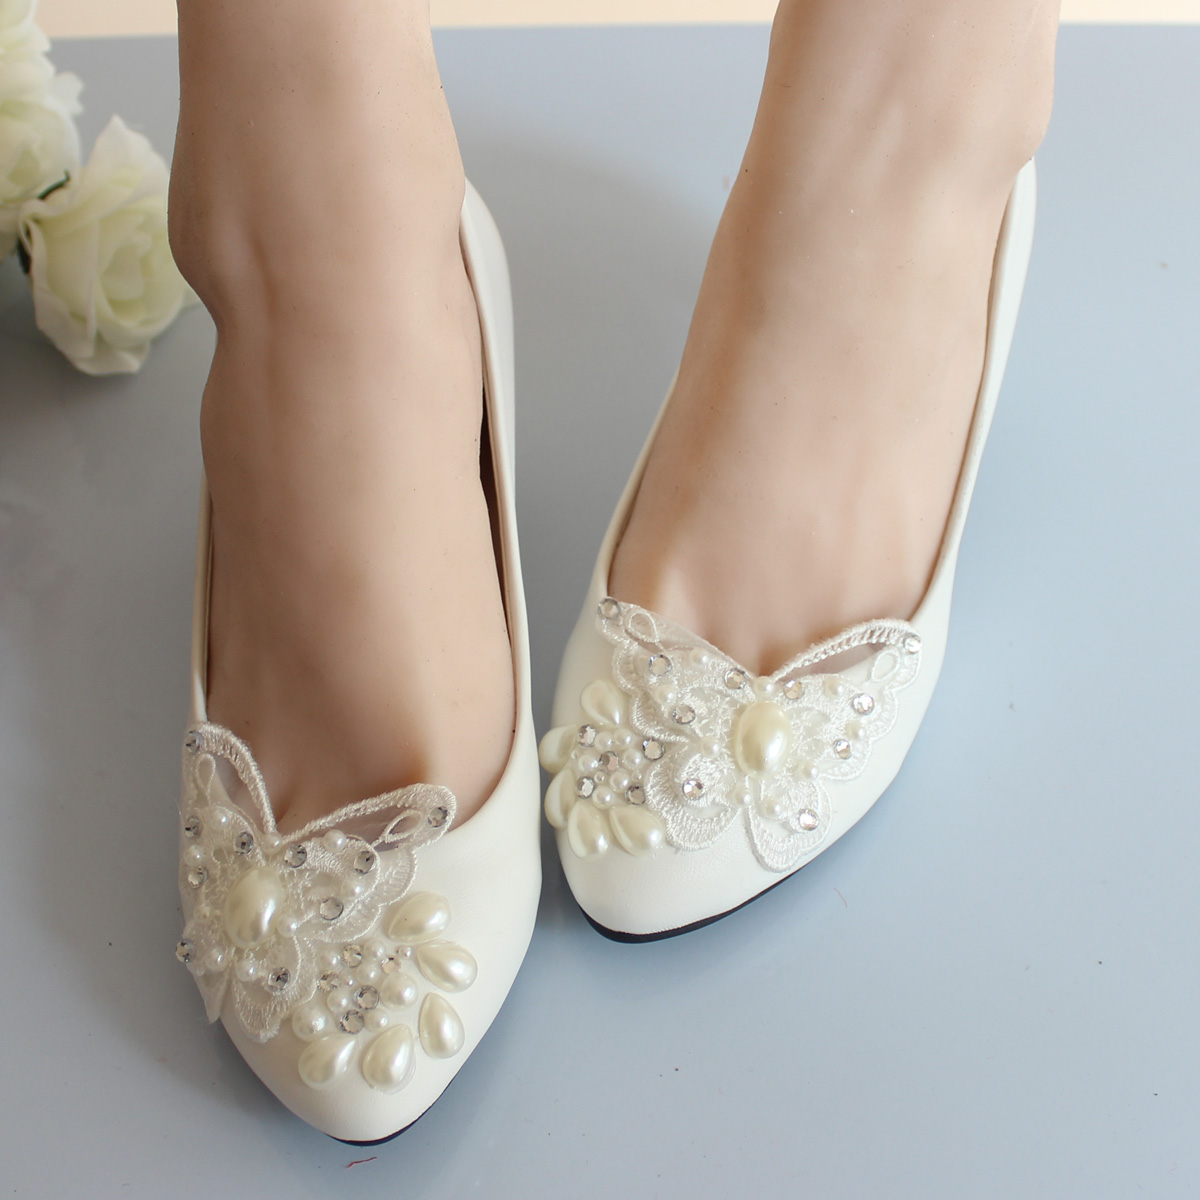 Bridal Party Slippers | Division of Global Affairs